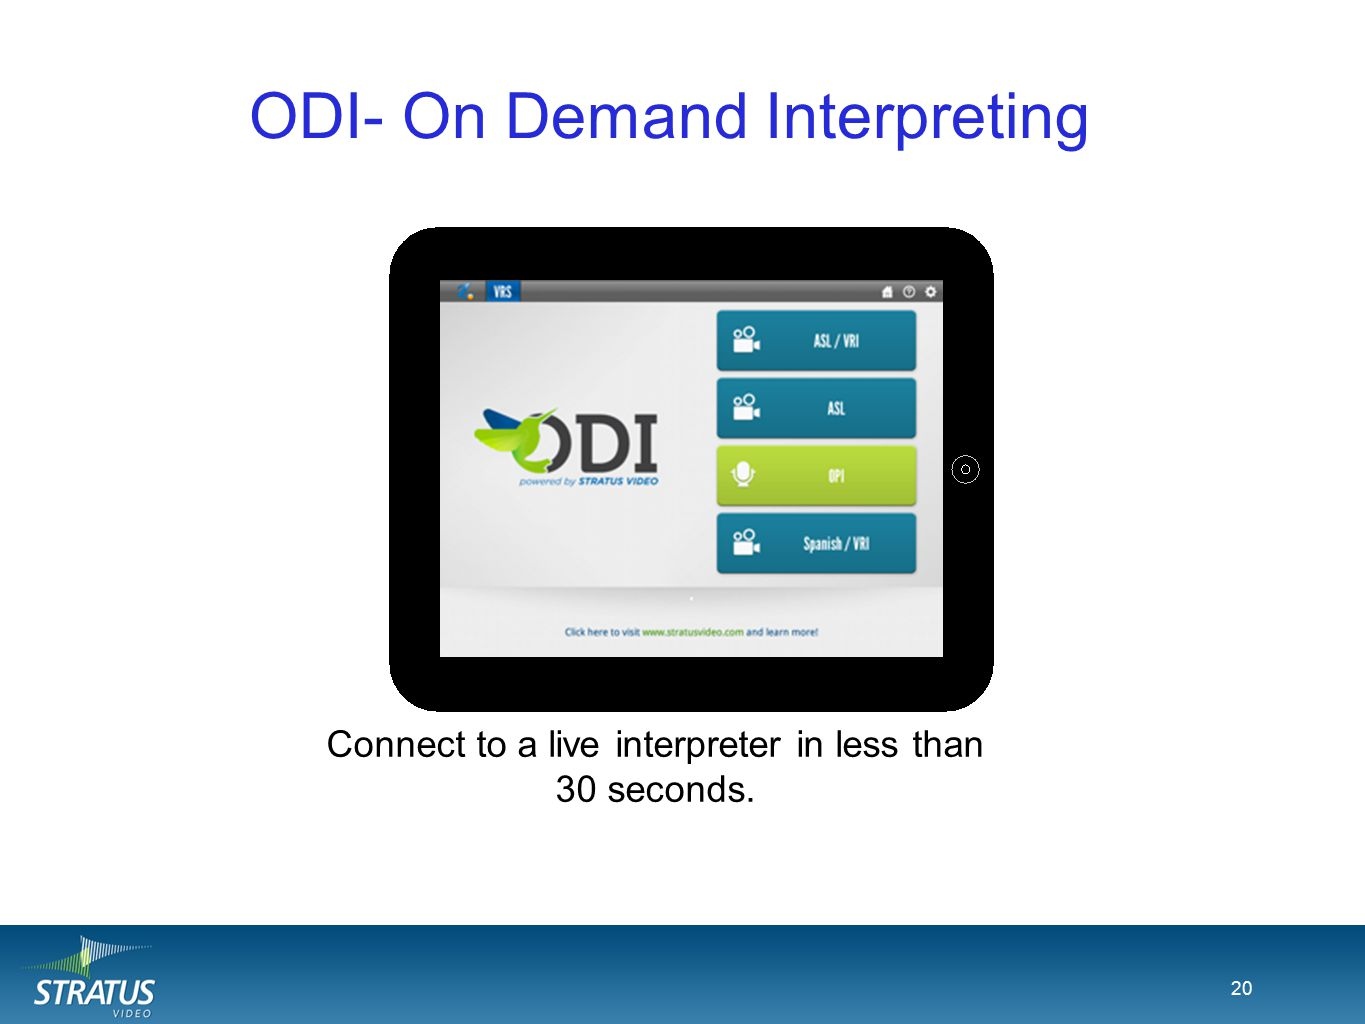 20 ODI- On Demand Interpreting 20 Connect to a live interpreter in less than 30 seconds.